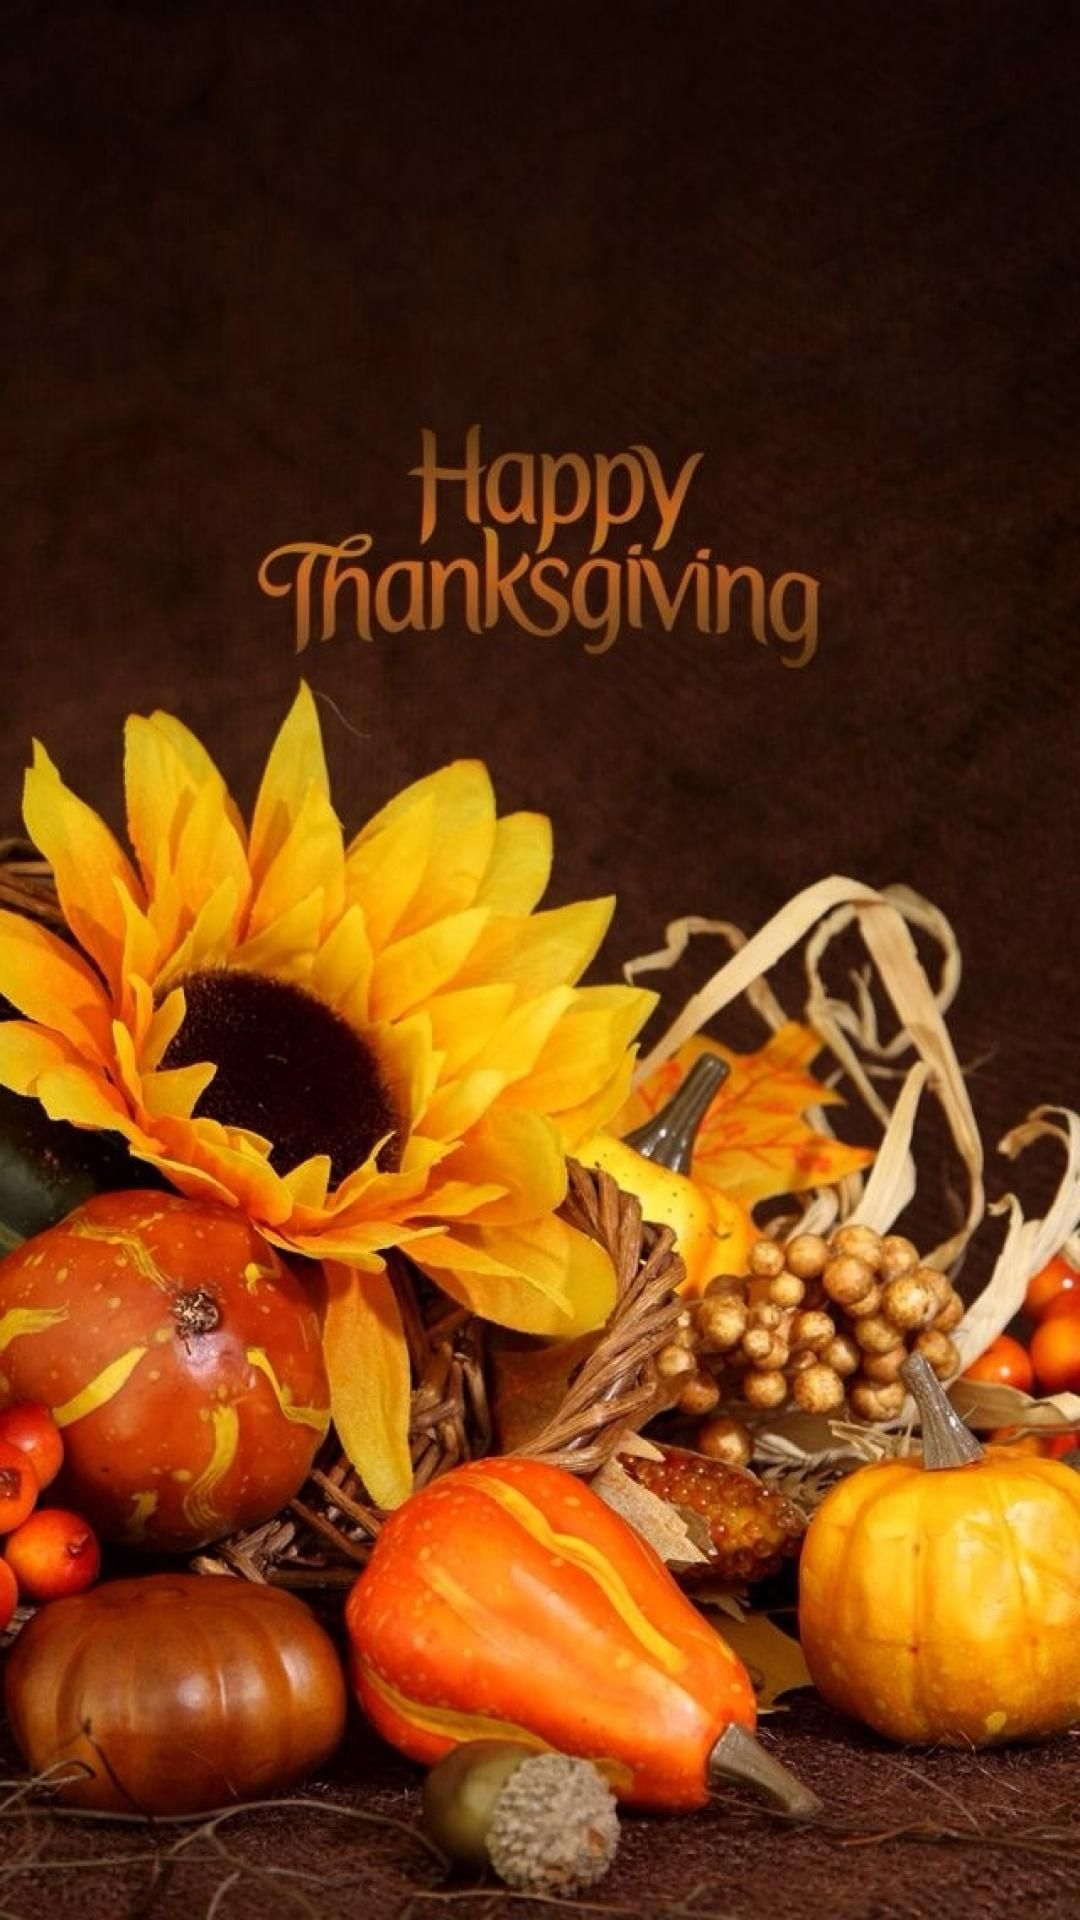 Happy Thanksgiving Wishes Picture Share On Facebook